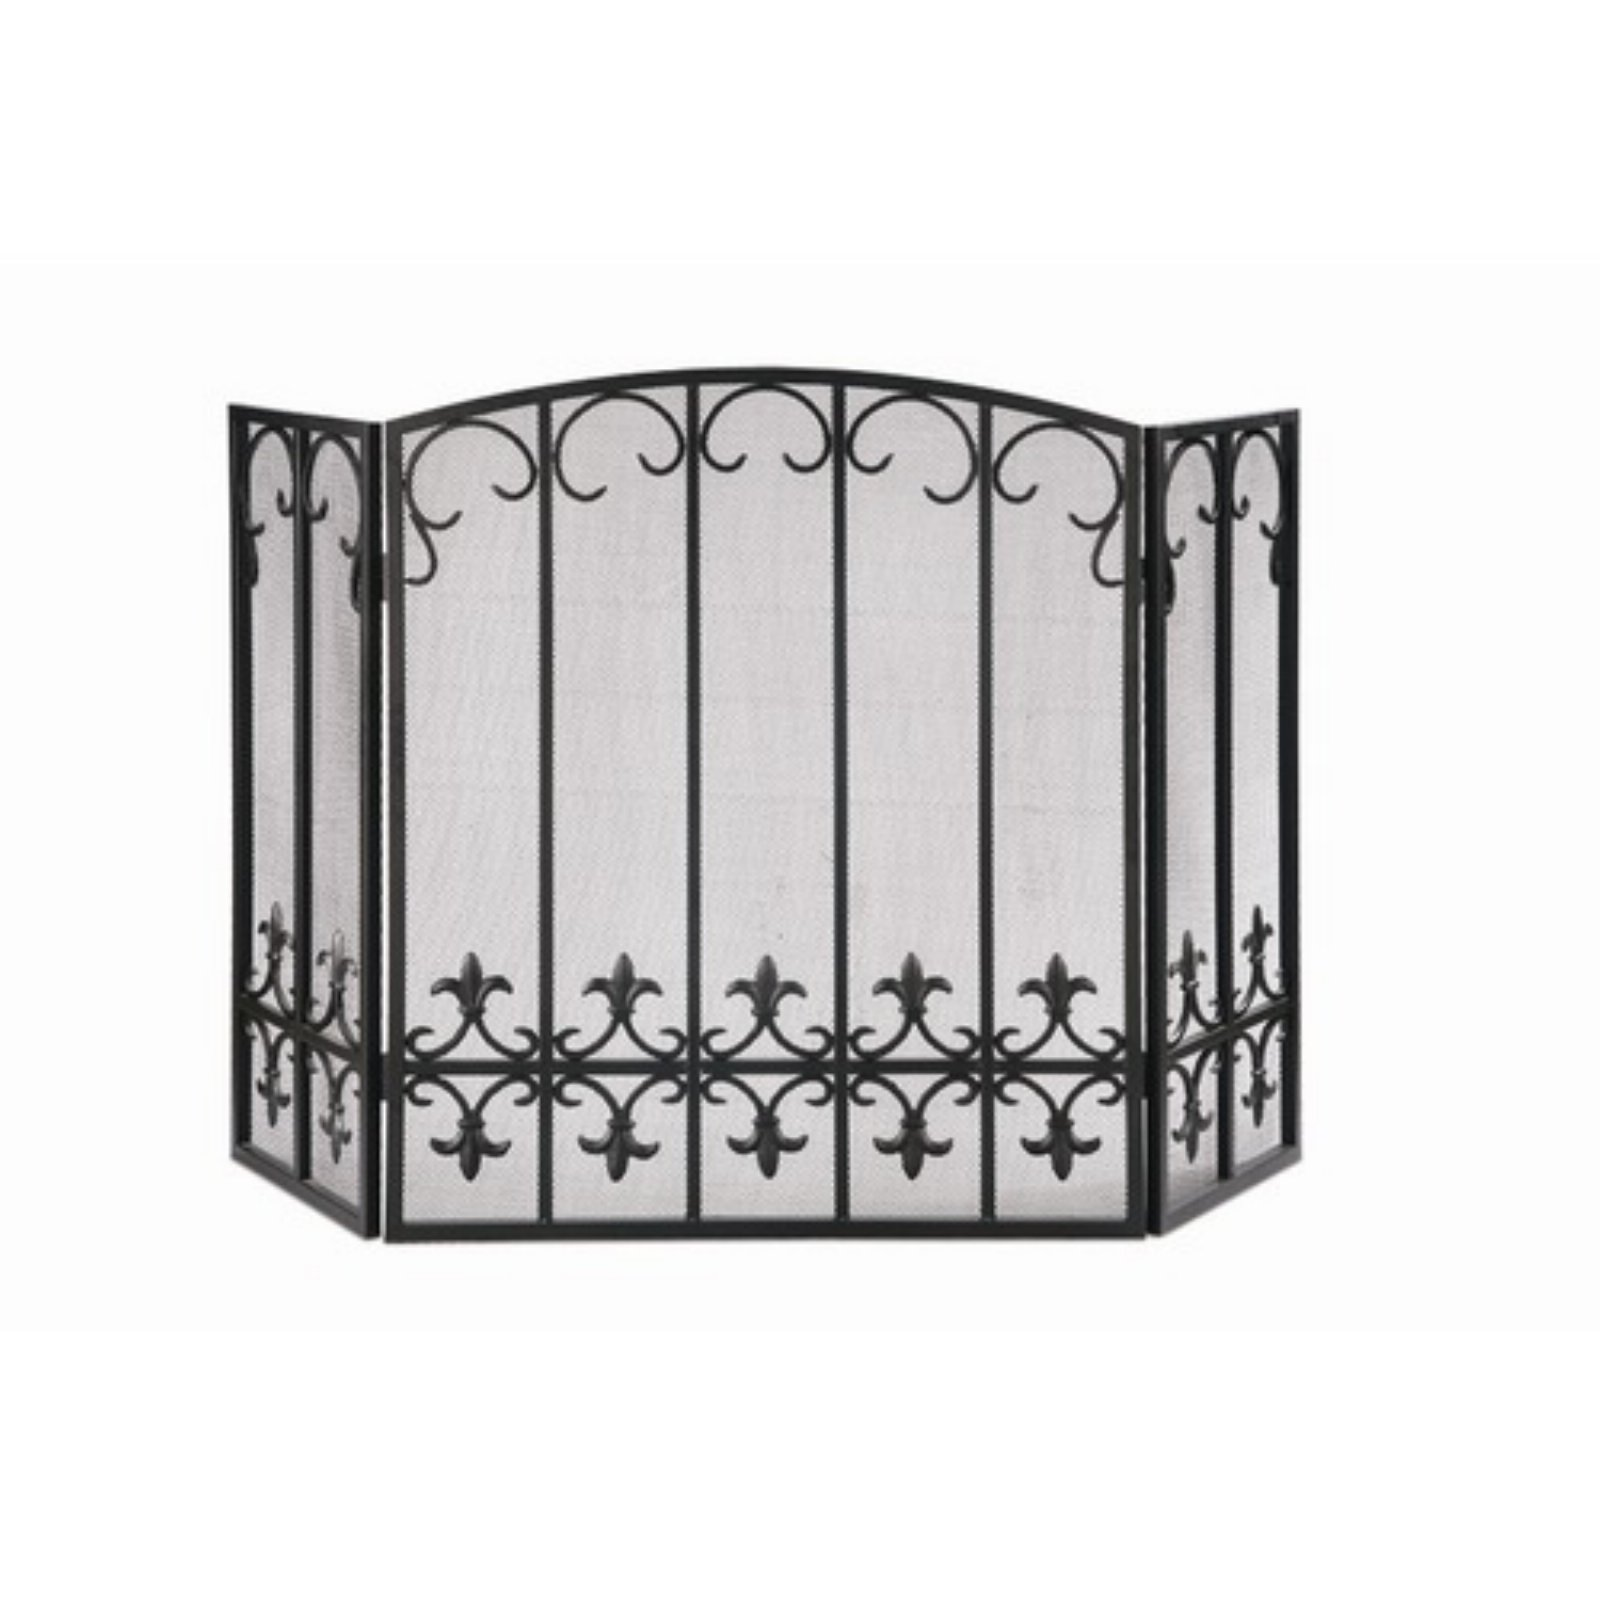 Fleur de Lis Cage Fireplace Screen